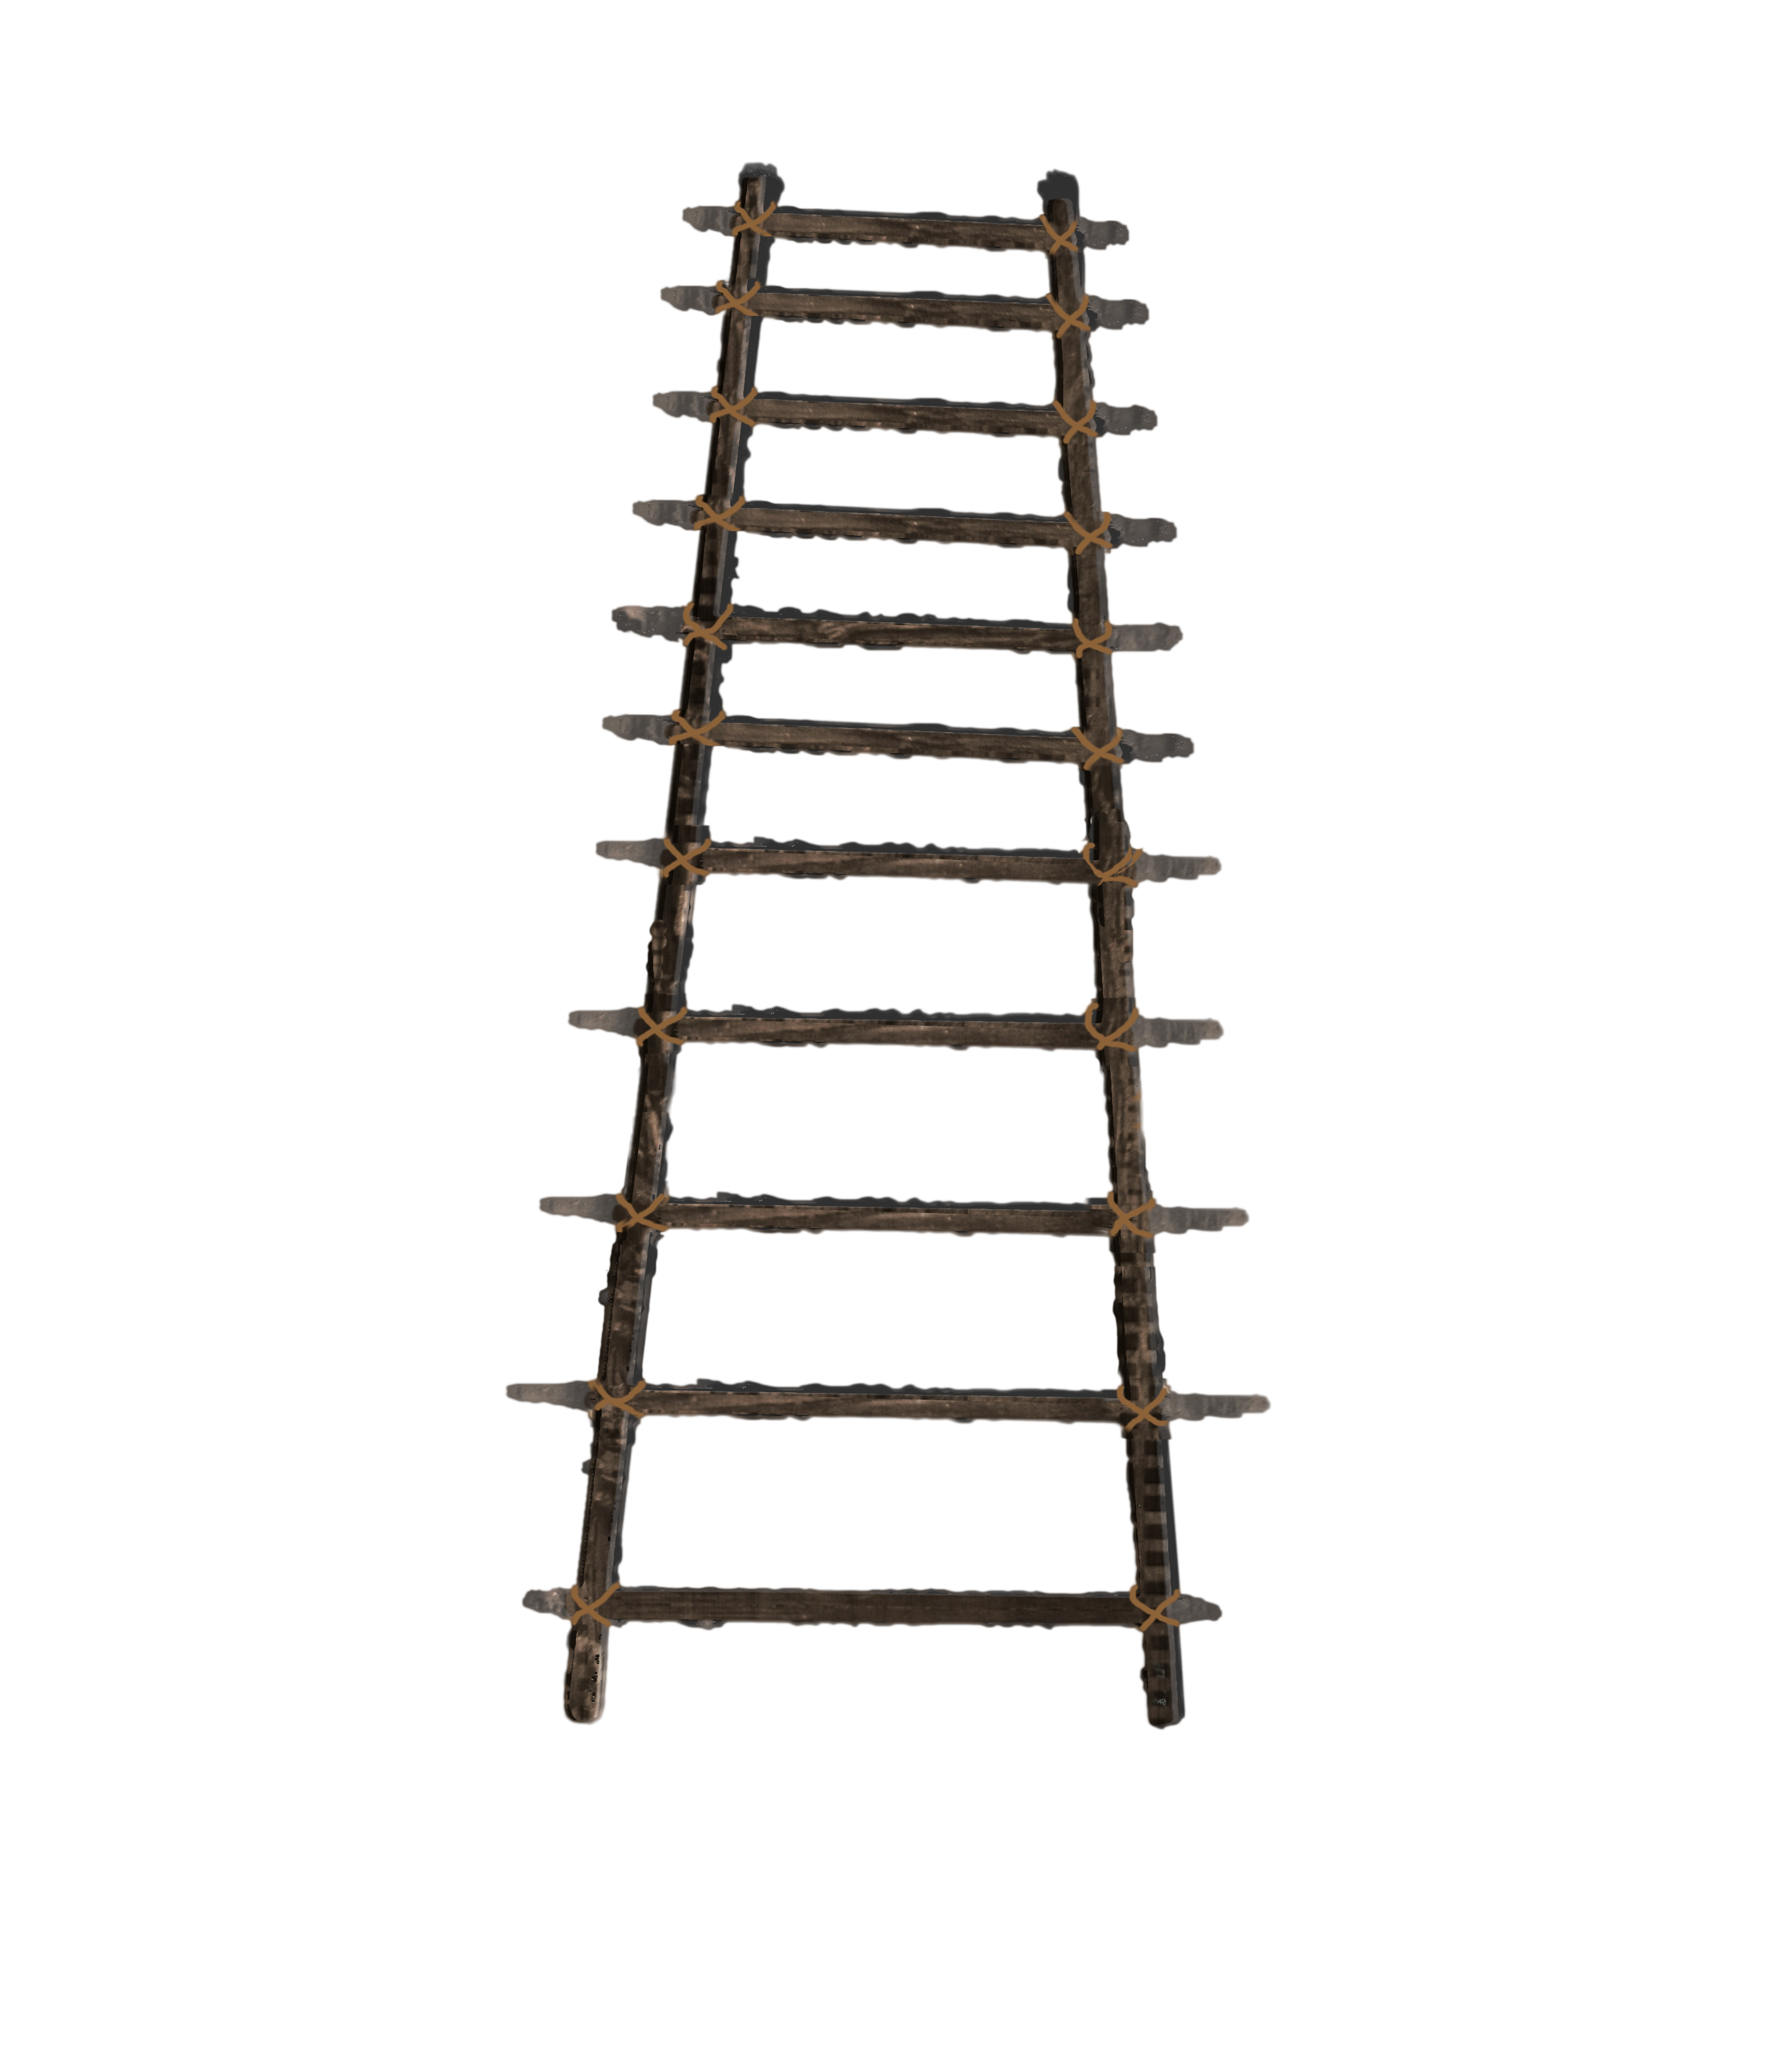 Rope ladder png. Hd transparent images pluspng